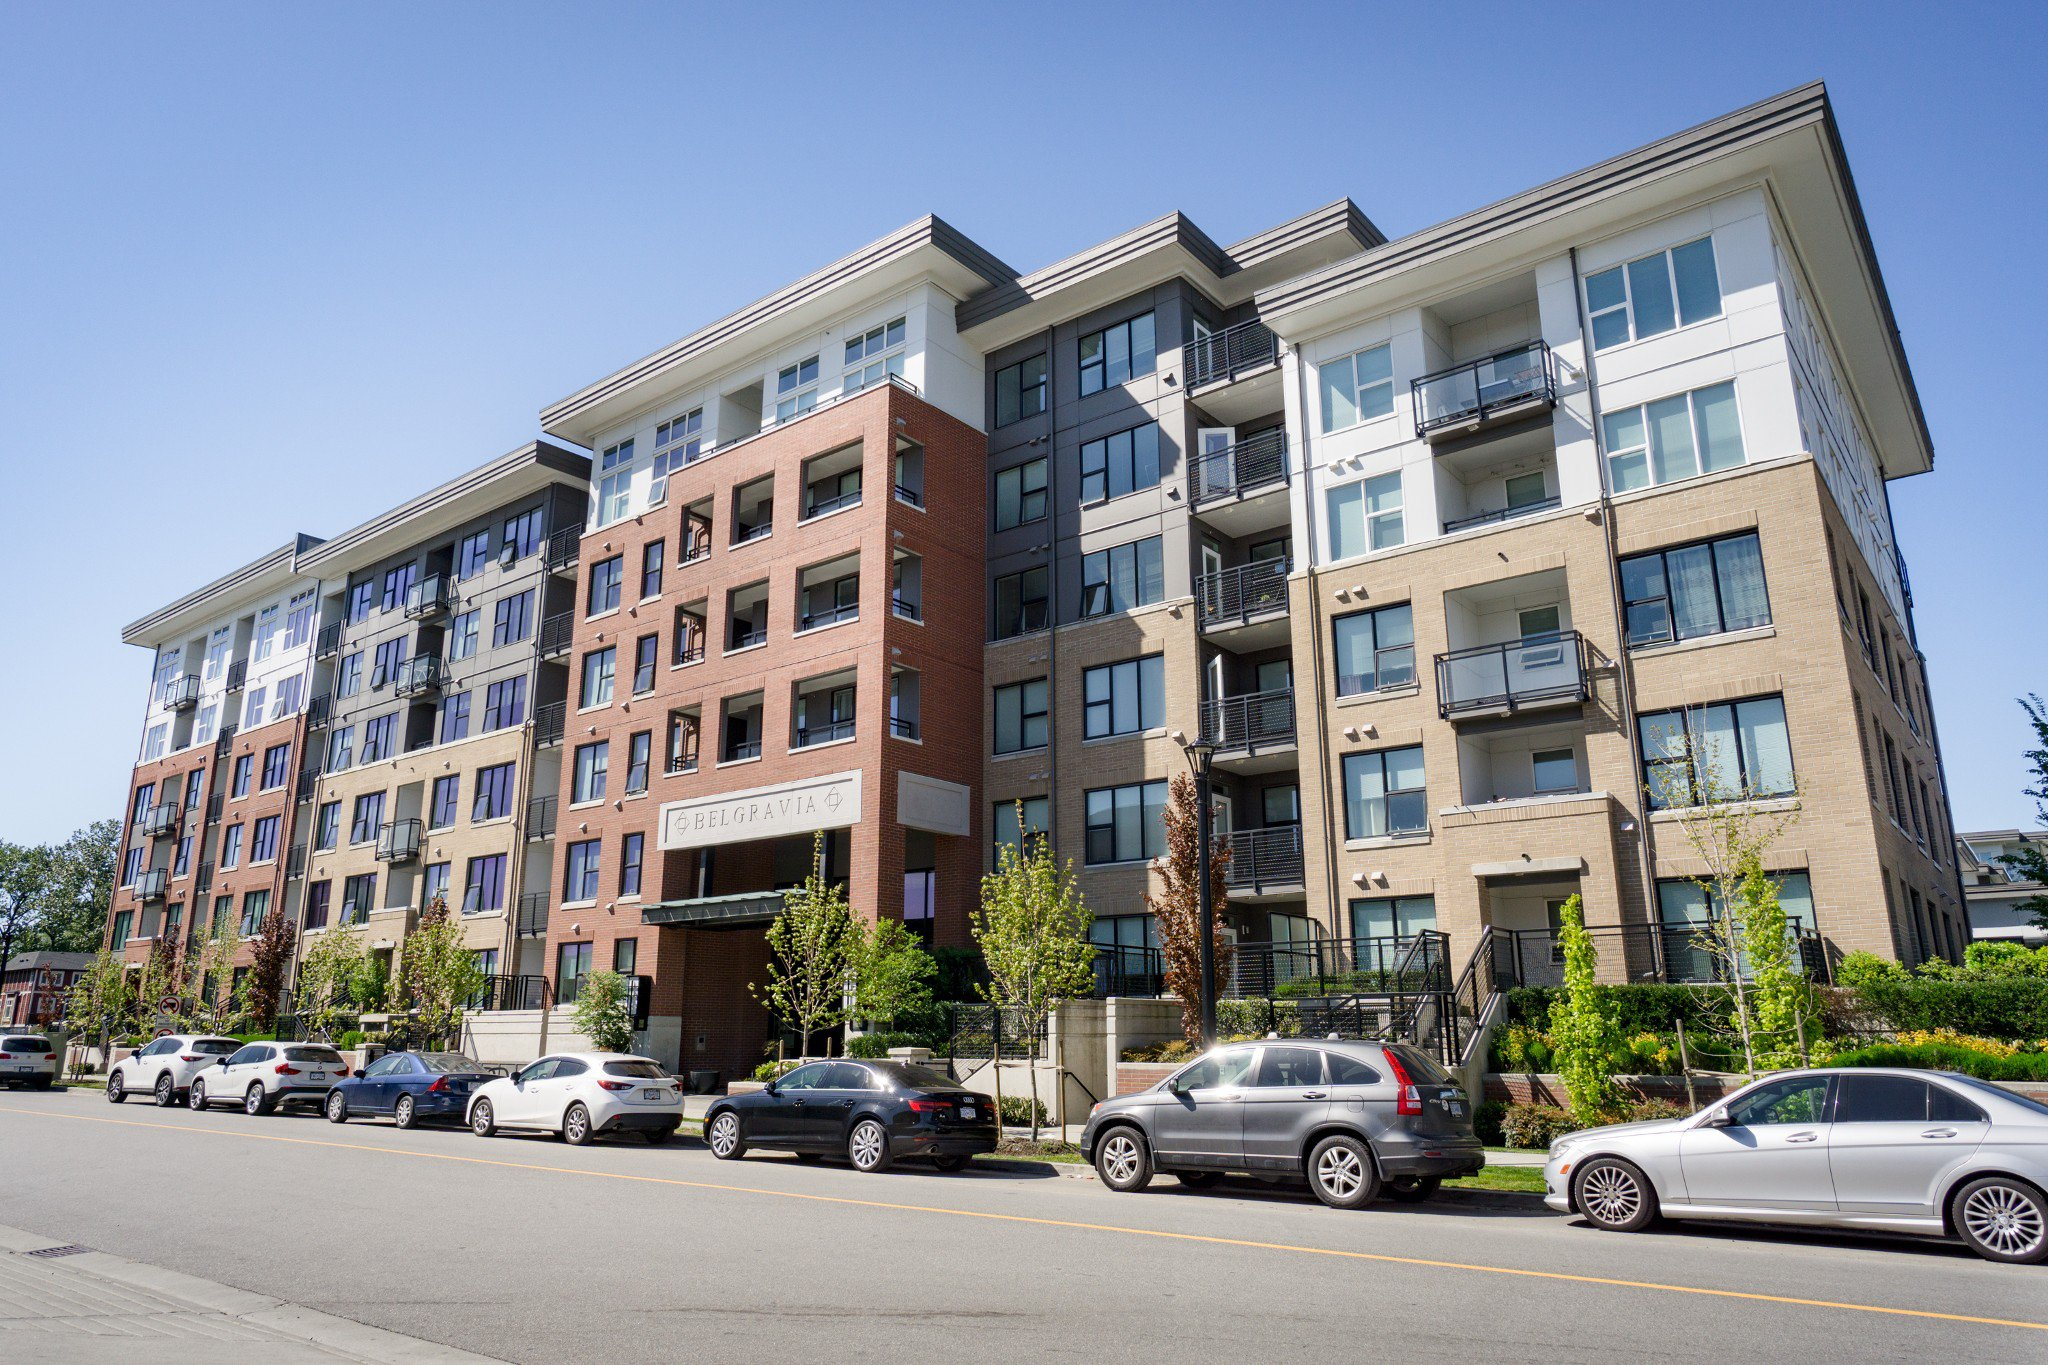 """Photo 46: Photos: 303 9311 ALEXANDRA Road in Richmond: West Cambie Condo for sale in """"ALEXANDRA COURT"""" : MLS®# R2347629"""